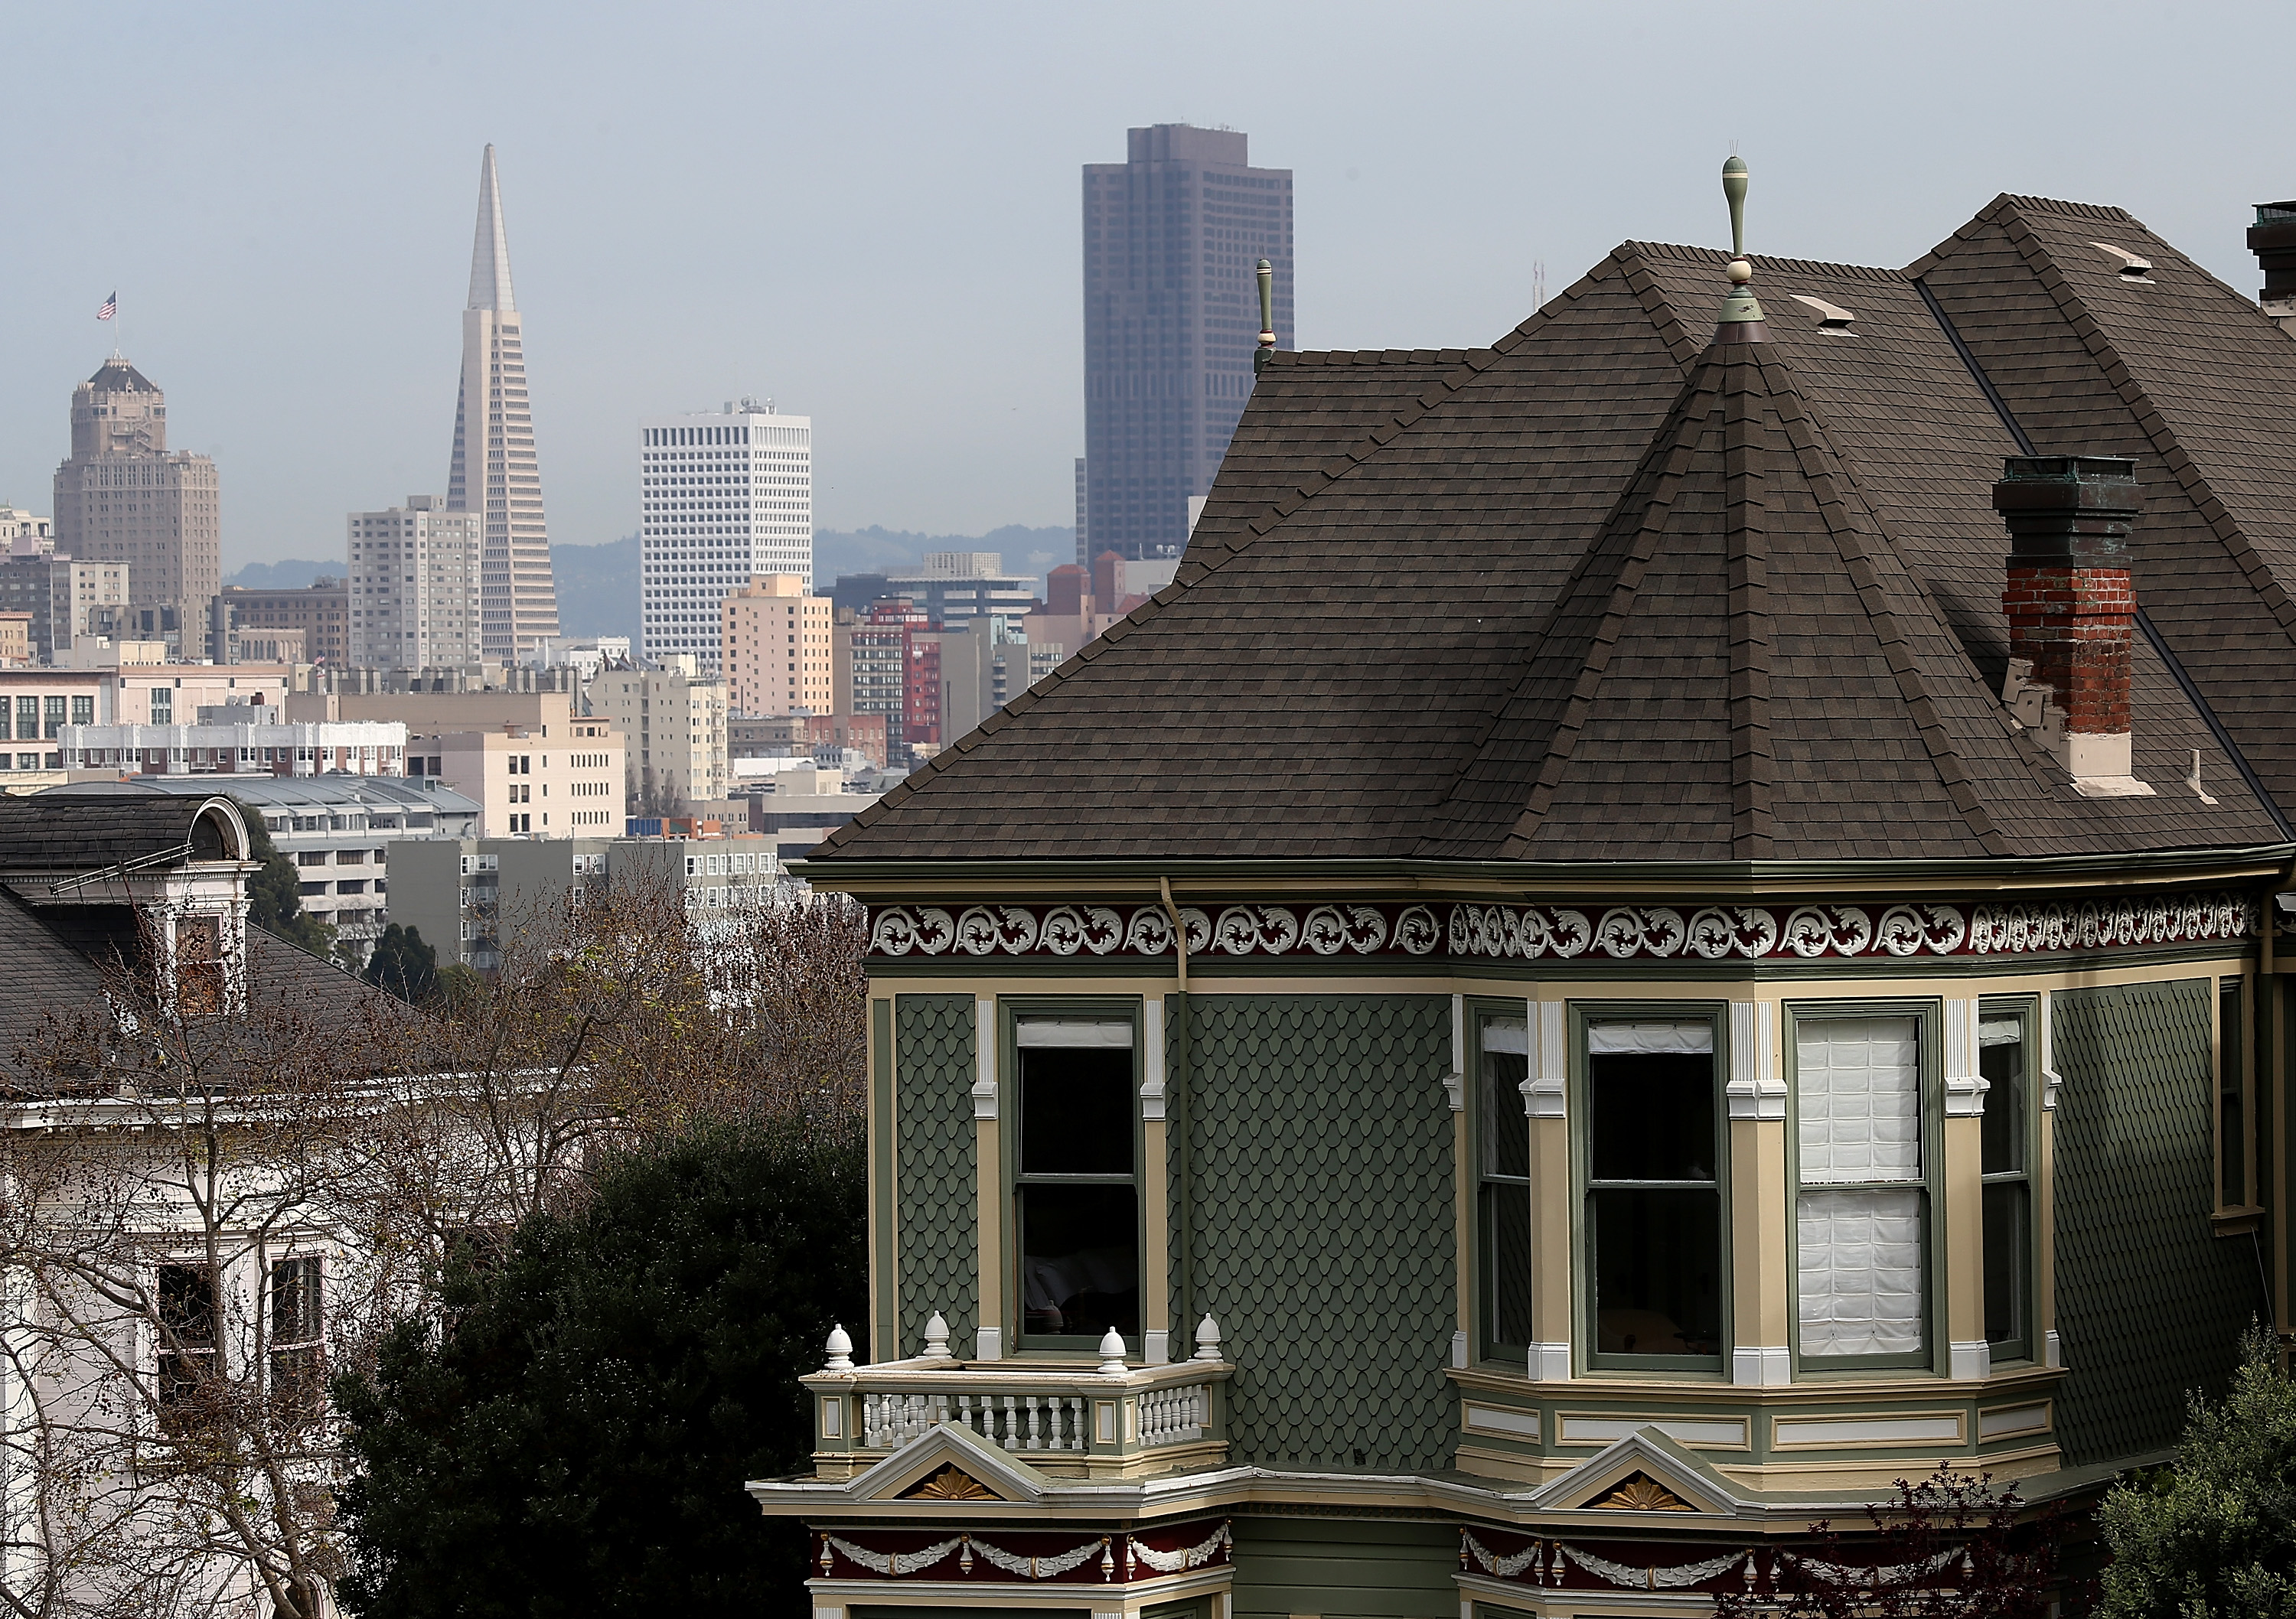 Strict housing regulations are holding back growth in San Francisco.